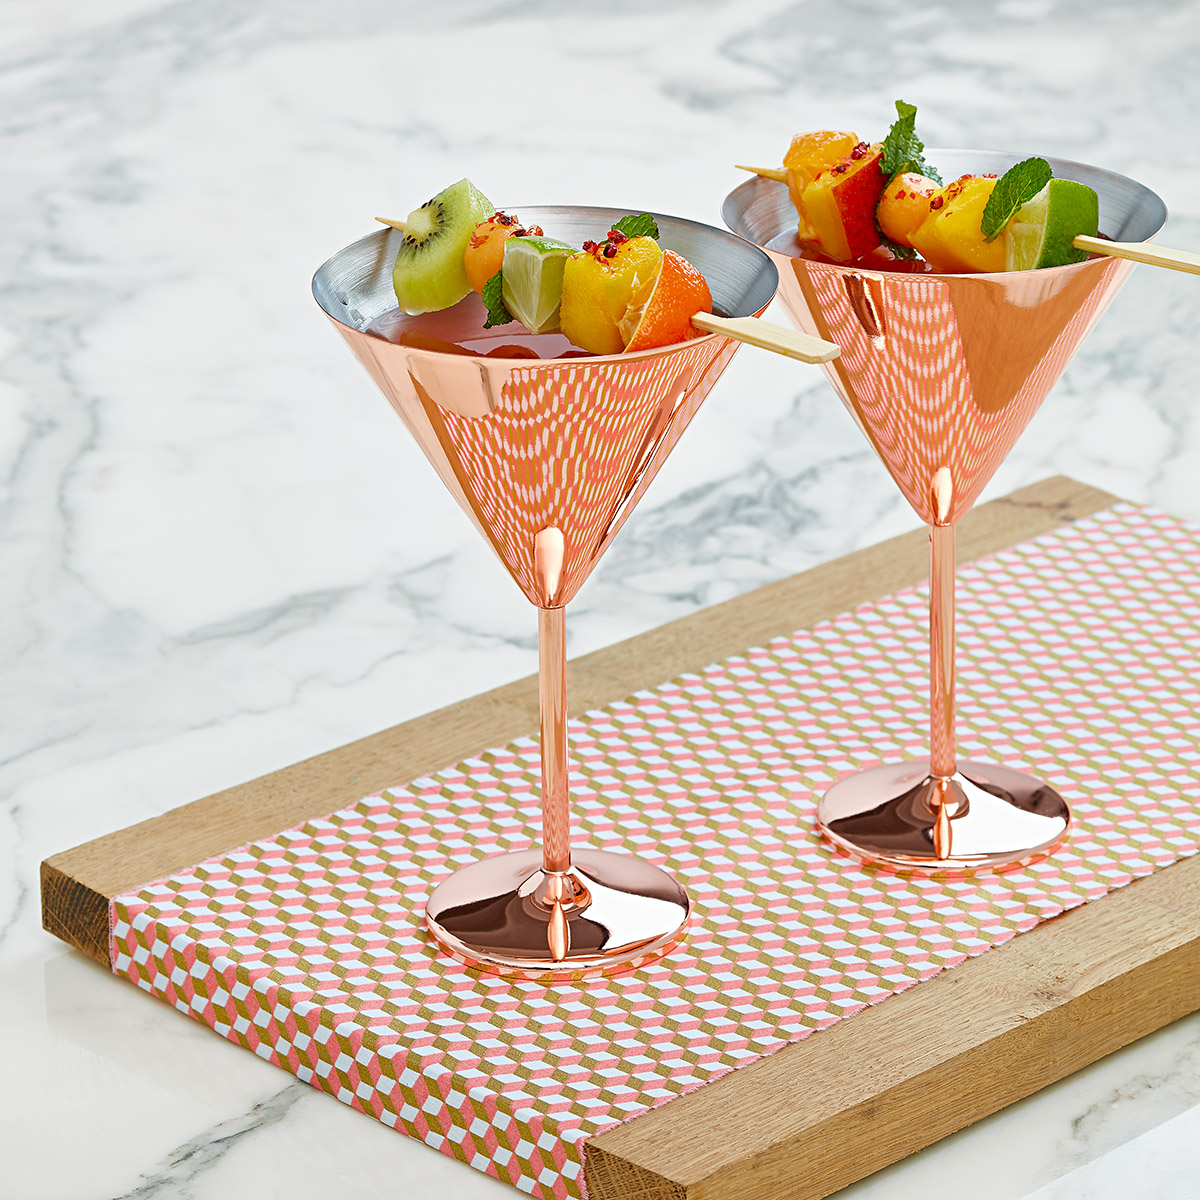 jacquet_bev_chandon_cocktails_copper_2